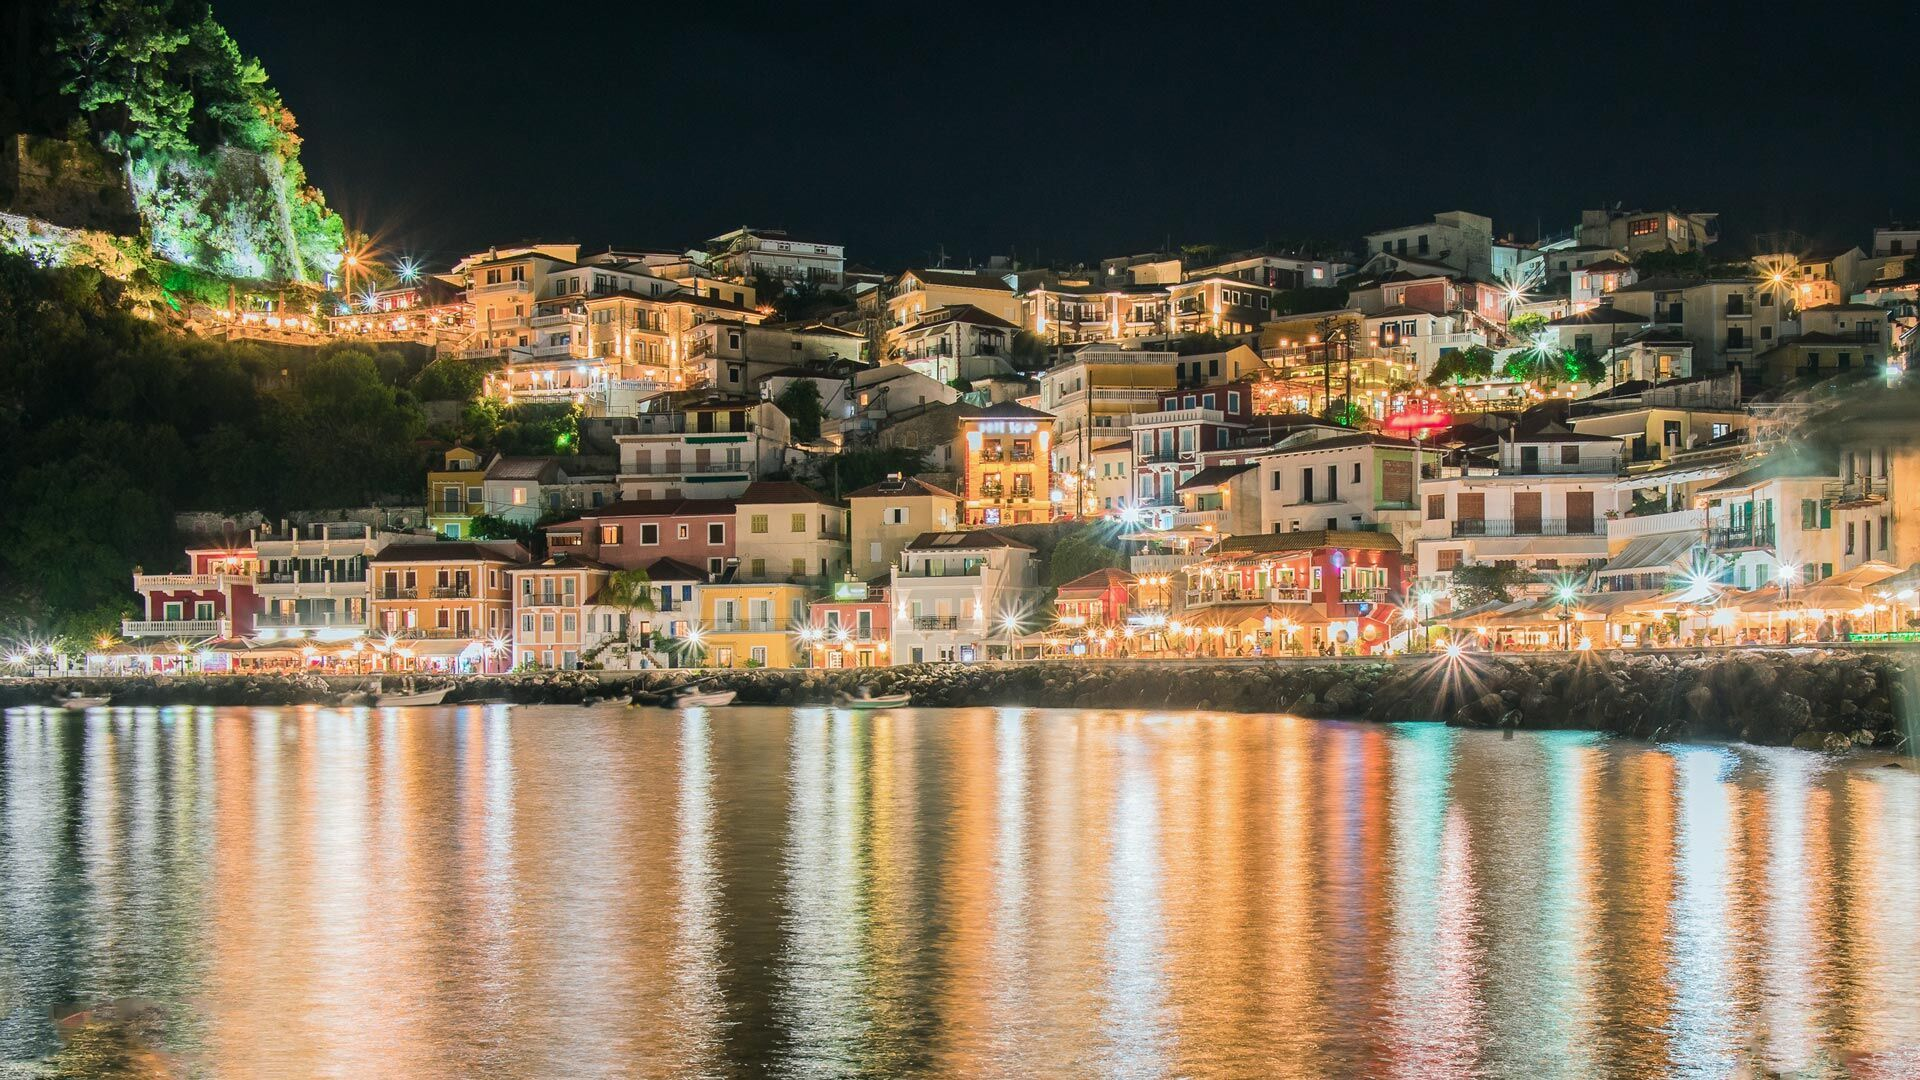 Looking across the bay towards traditional houses and Parga's castle, during the night